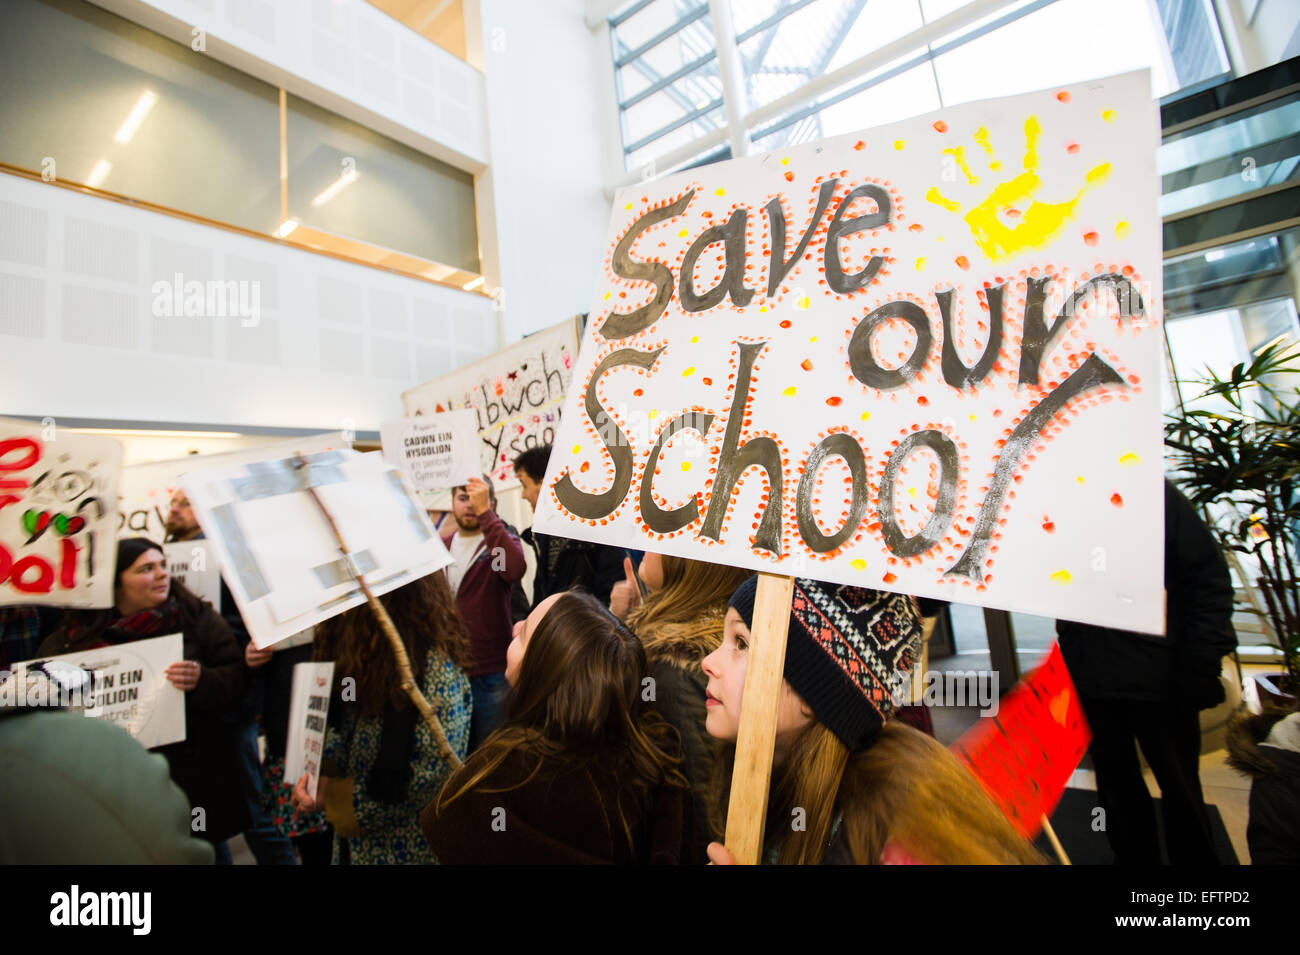 Aberystwyth, Wales, UK. 10th February, 2015.  'Save our School' : Parents and children protesting at the - Stock Image